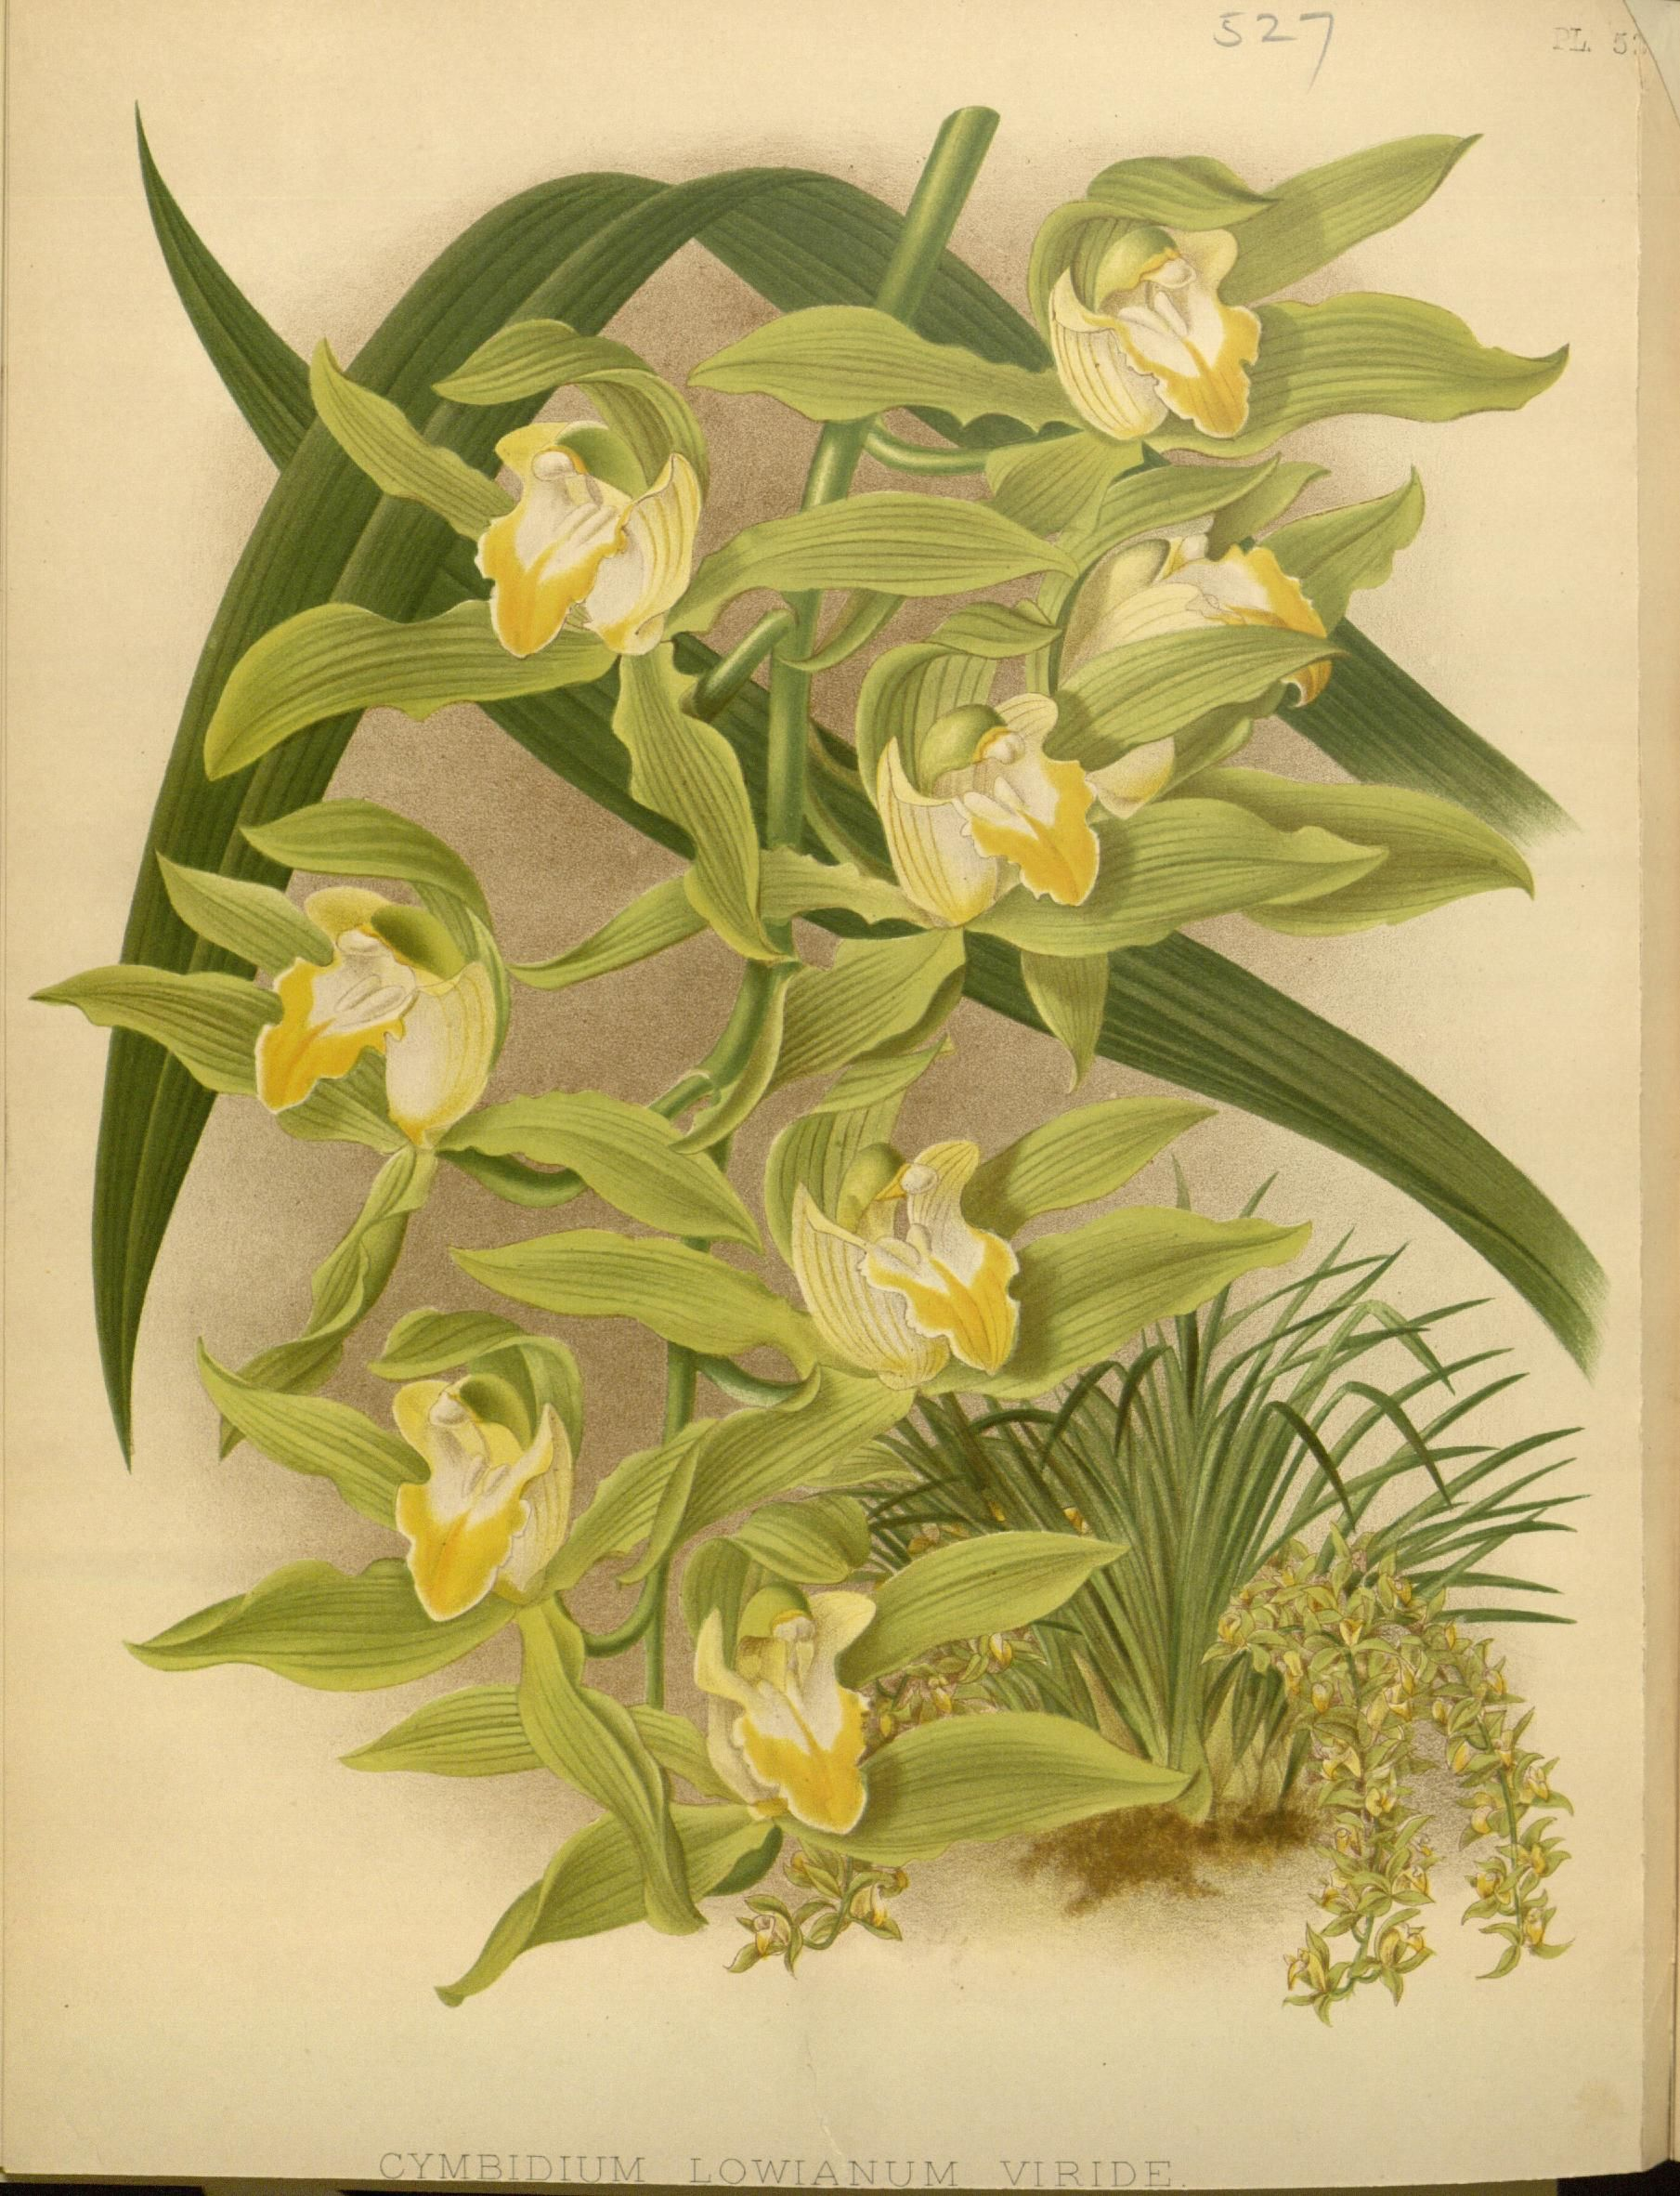 1897 - Orchid album : - Biodiversity Heritage Library